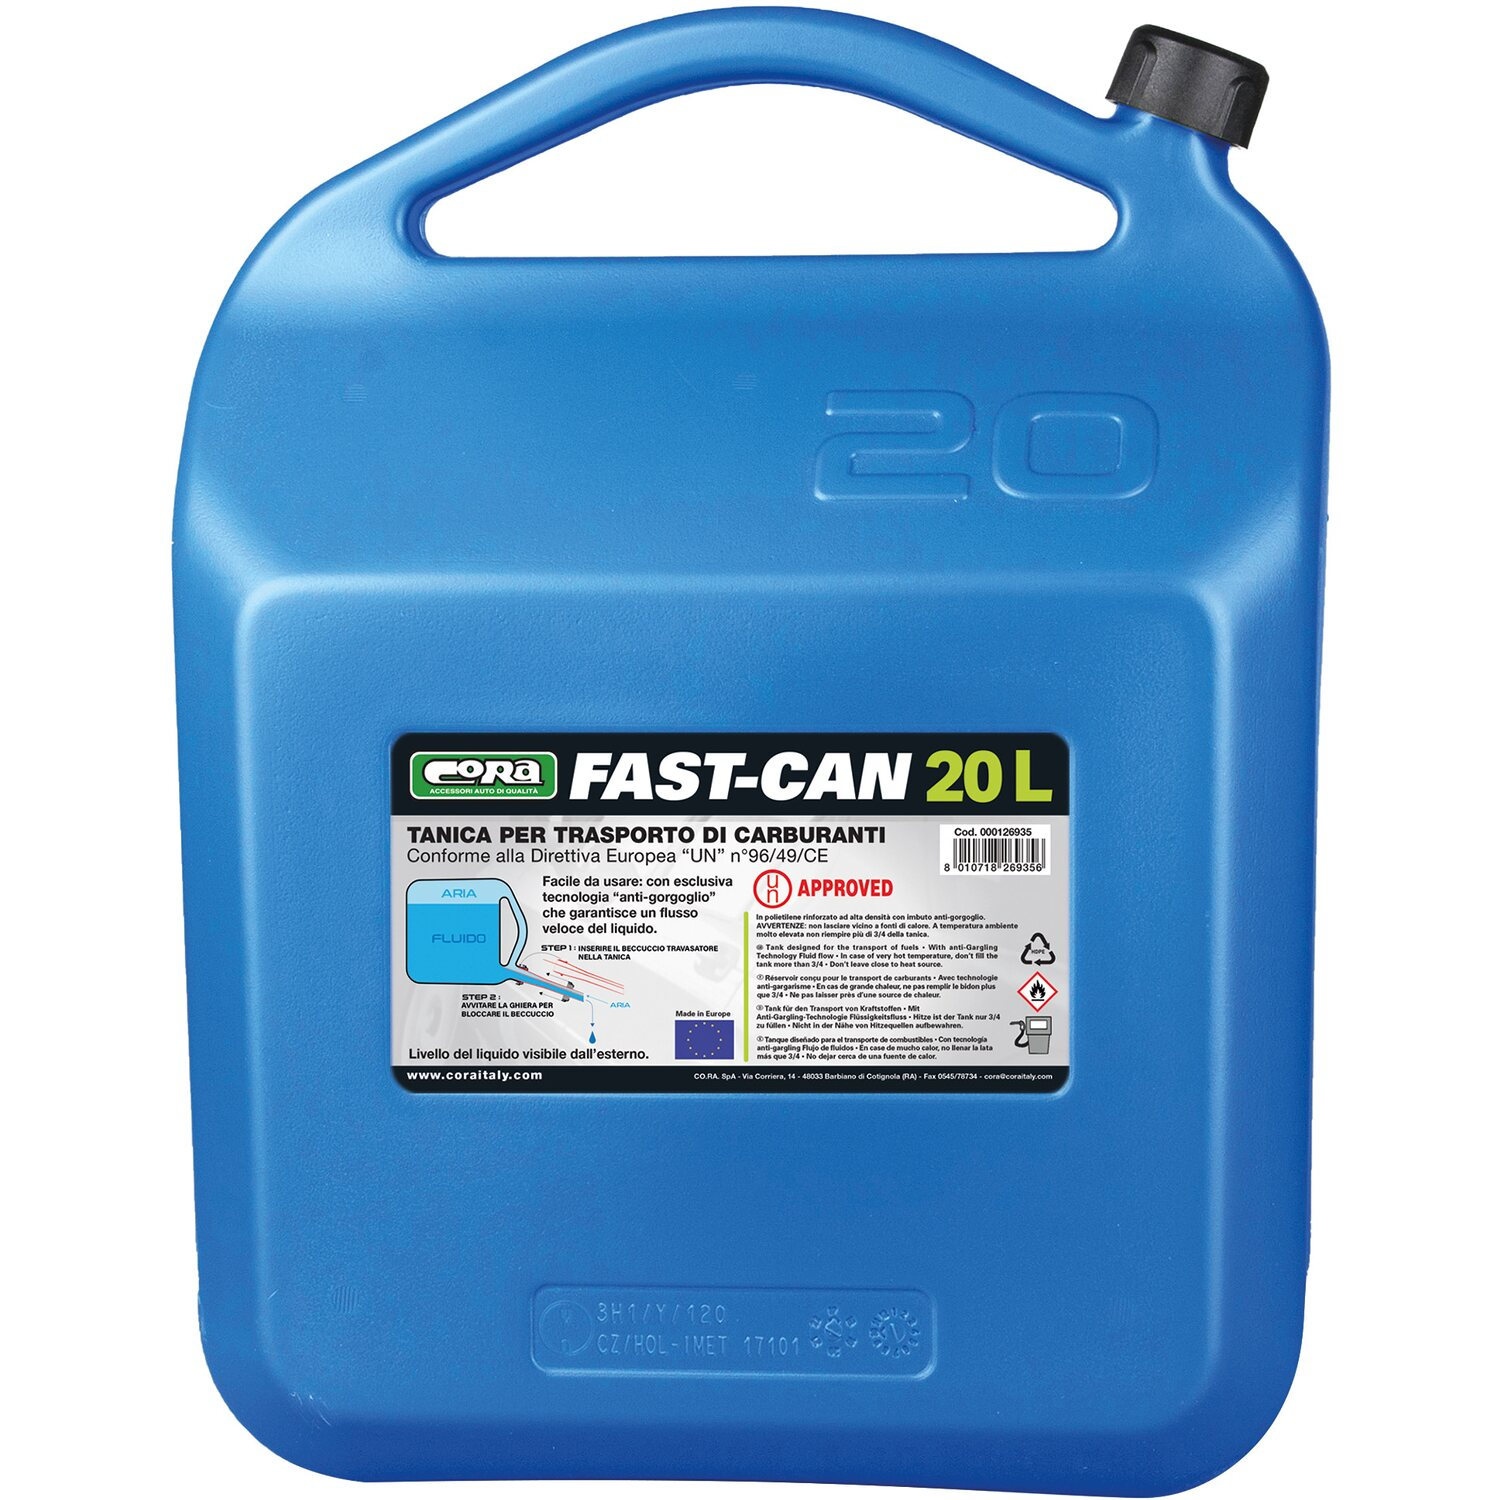 Fast can tanica 20 l omologata un acquista da obi for Obi stufe a combustibile liquido